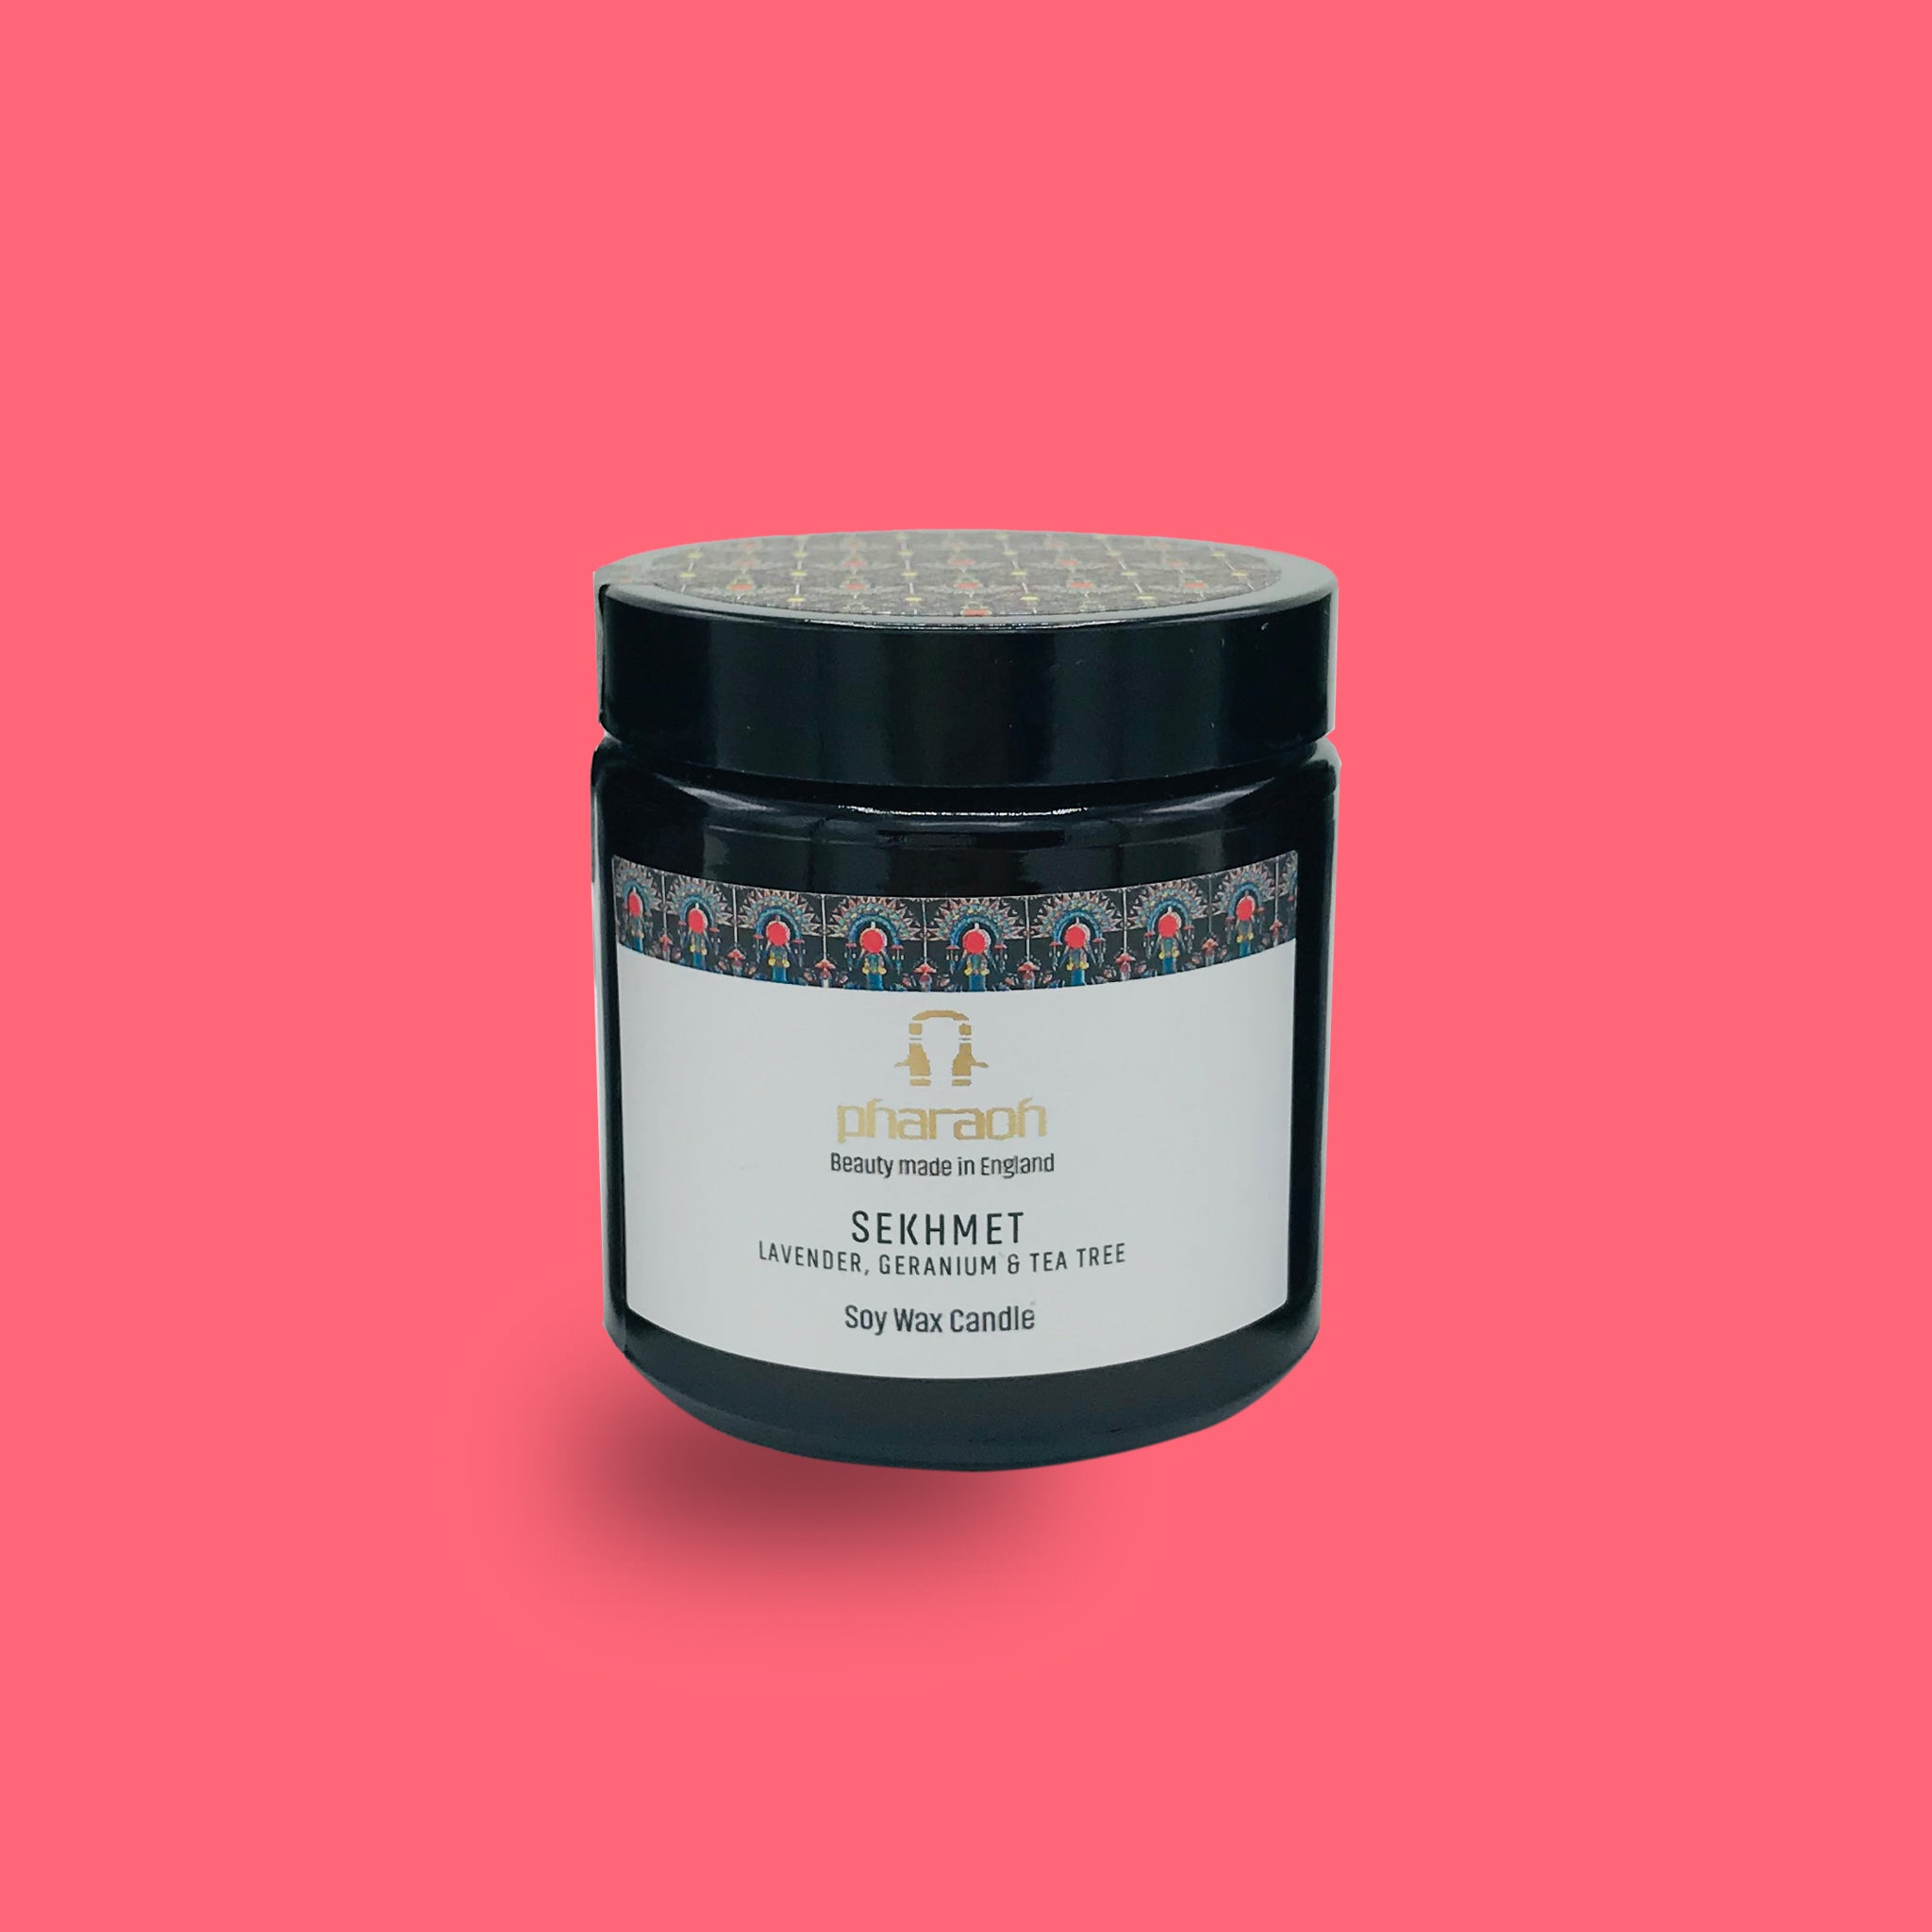 SEKHMET SPA Essentials Soy Wax Candle Collection